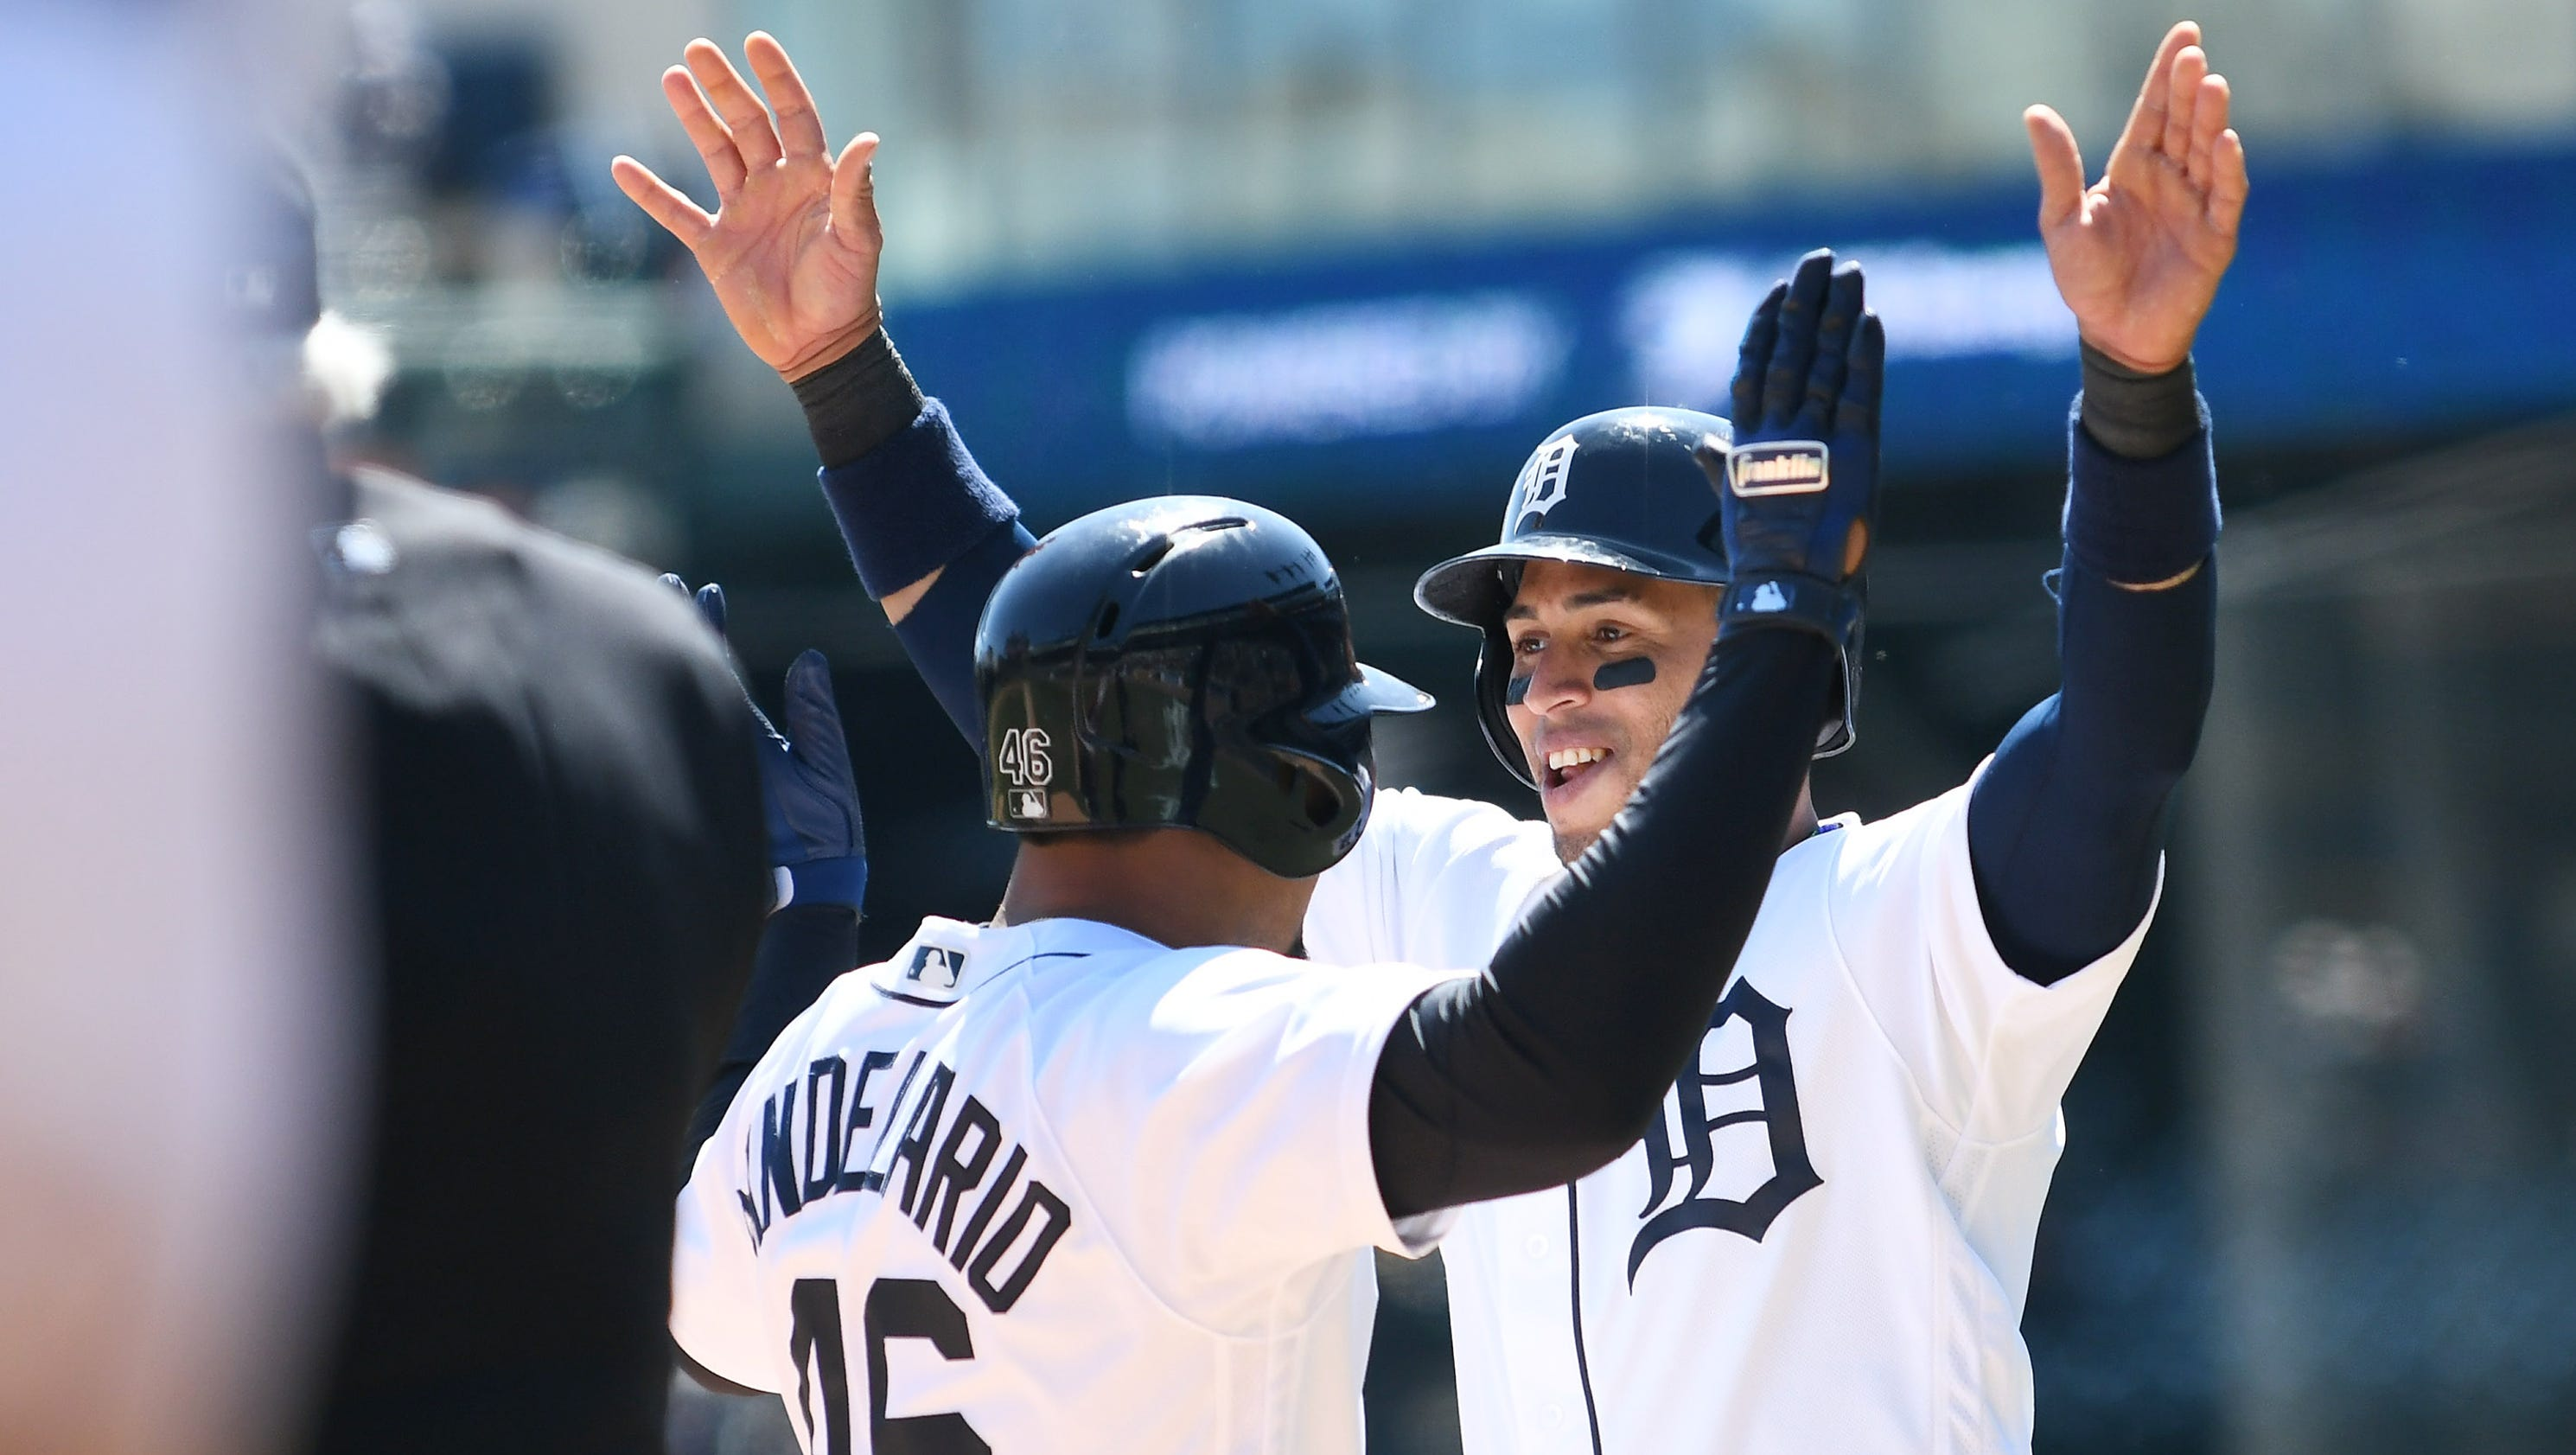 636597492209511453-2018-0419-rb-tigers-orioles393